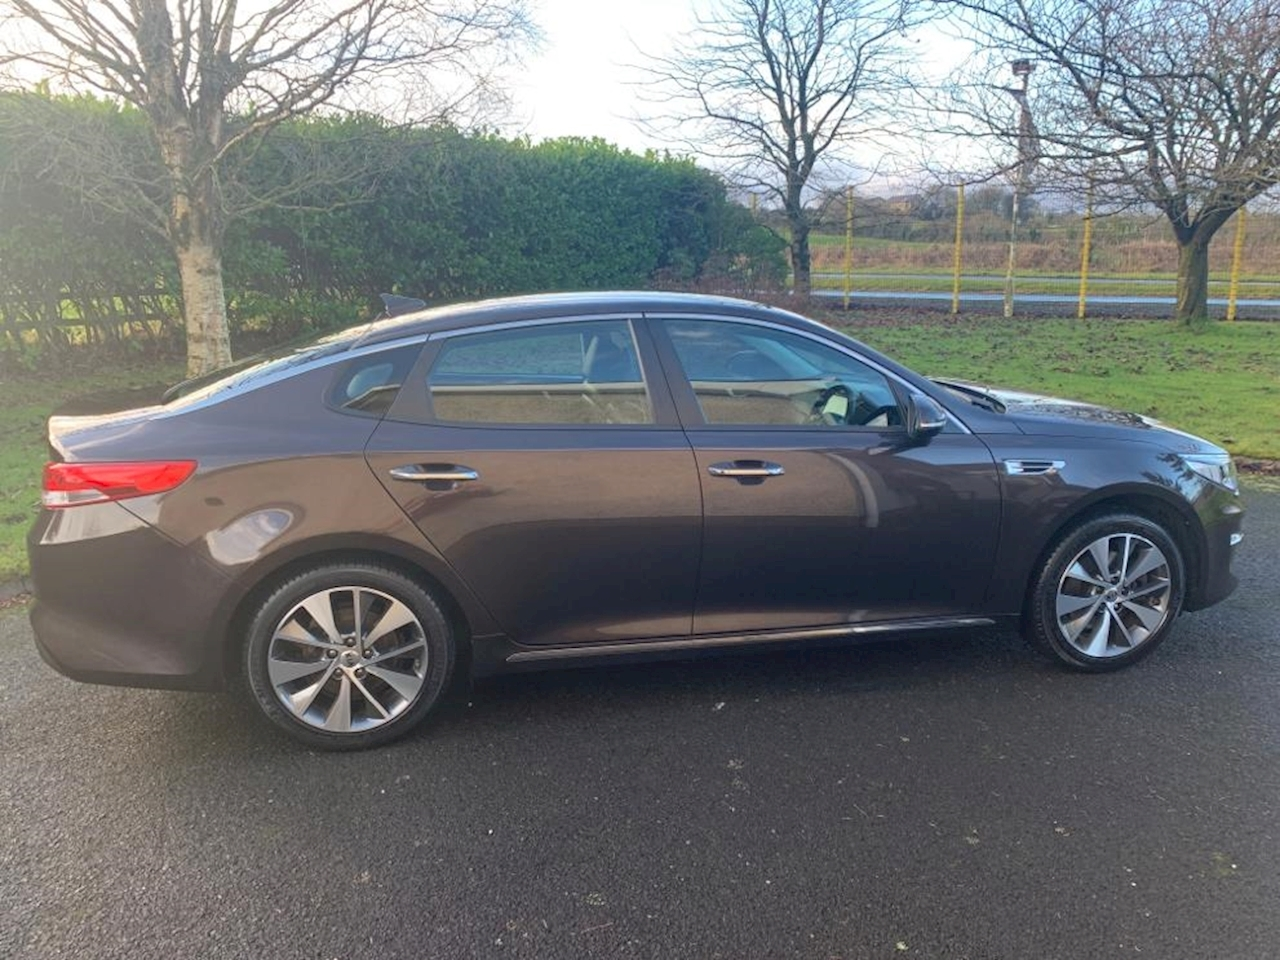 Kia Optima Crdi 3 Isg Saloon 1.7 Manual Diesel